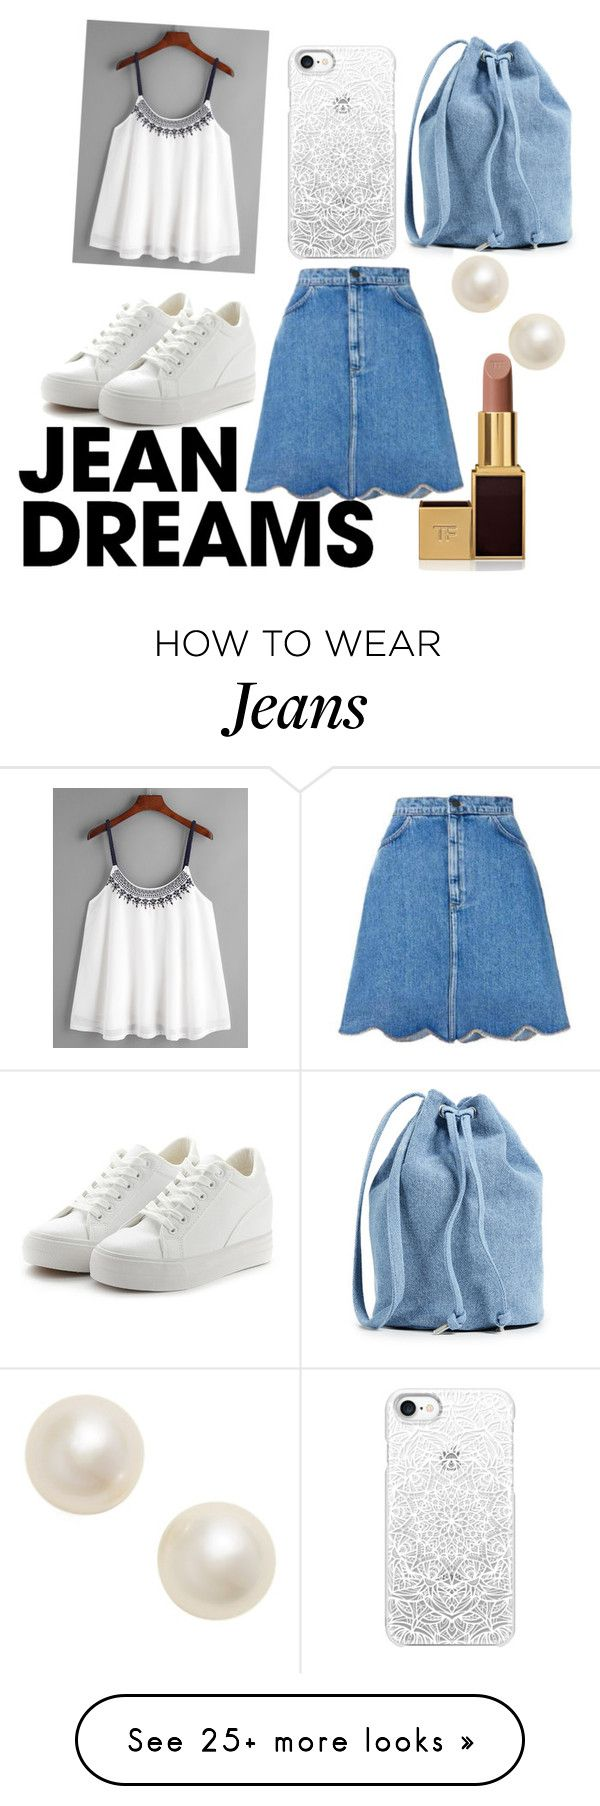 """jeans skirts"" by isaflyingpigs on Polyvore featuring diverse, BAGGU, Casetify, Poppy Finch, Tom Ford and denimskirts"